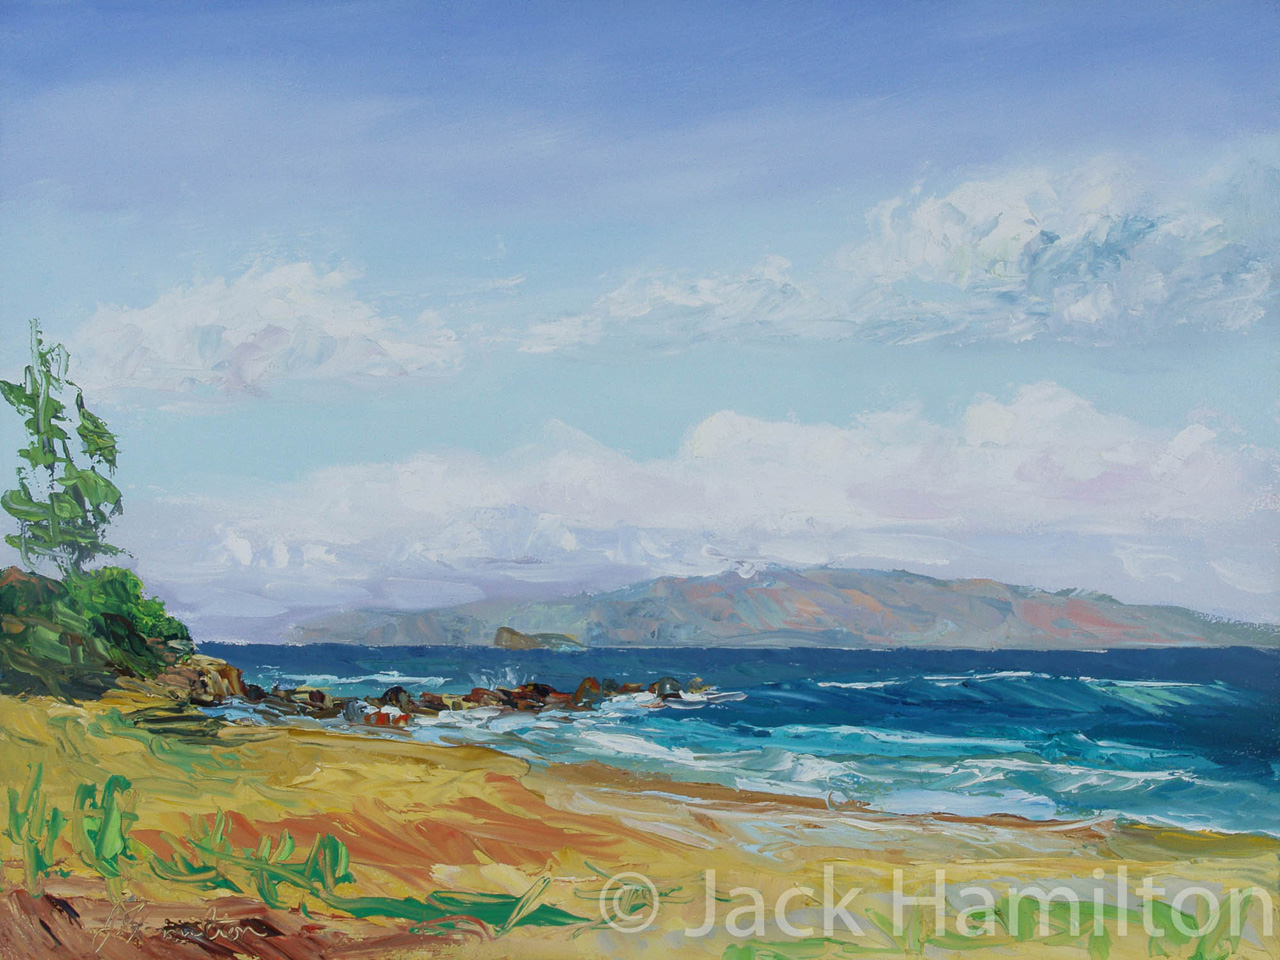 Glorious Kamaole Beach II by Jack Hamilton oil on canvas